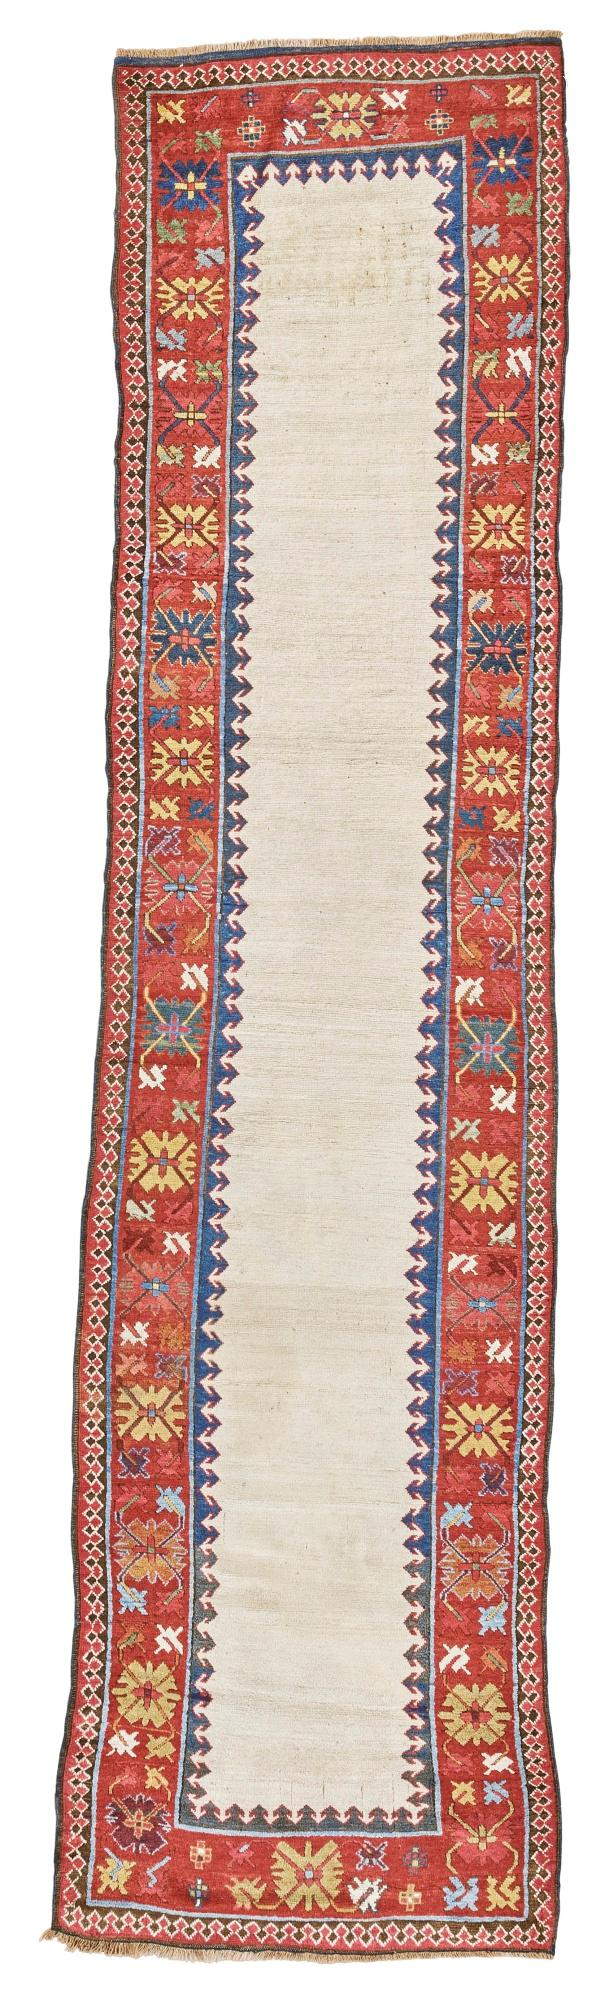 A TALISH LONG RUG, WEST CAUCASUS |